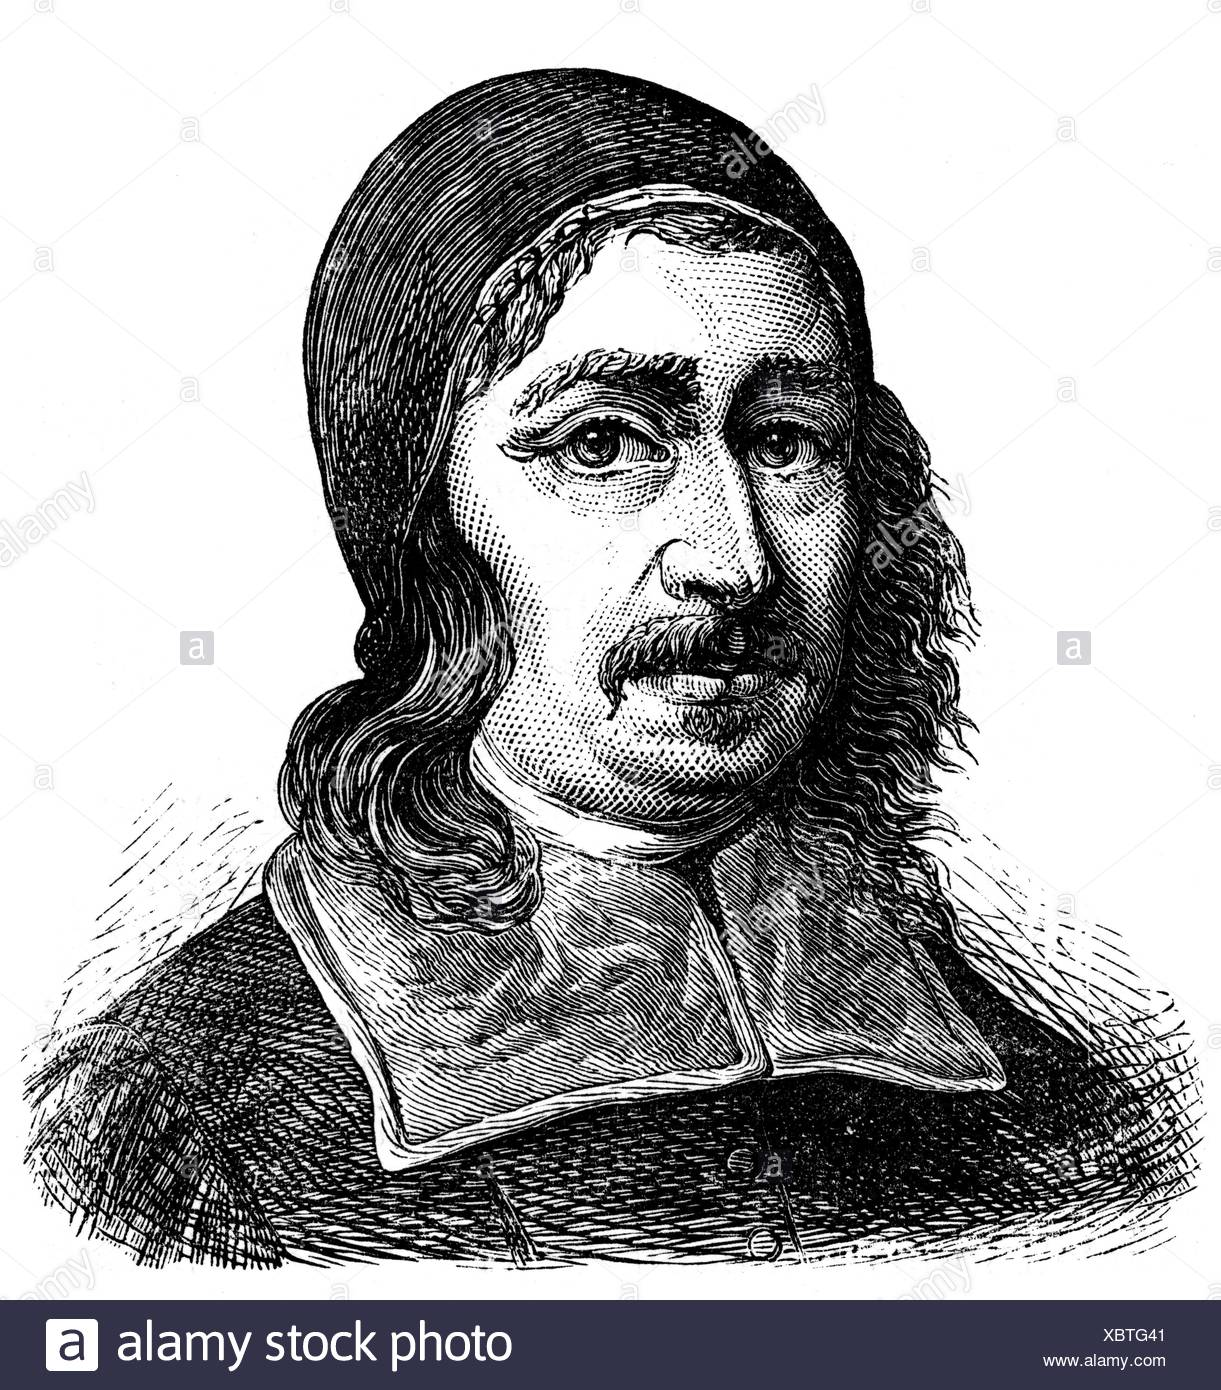 Baxter, Richard, 12.11.1615 - 8.12.1691, English clergyman, portrait, wood engraving, 19th century, Additional-Rights-Clearances-NA - Stock Image